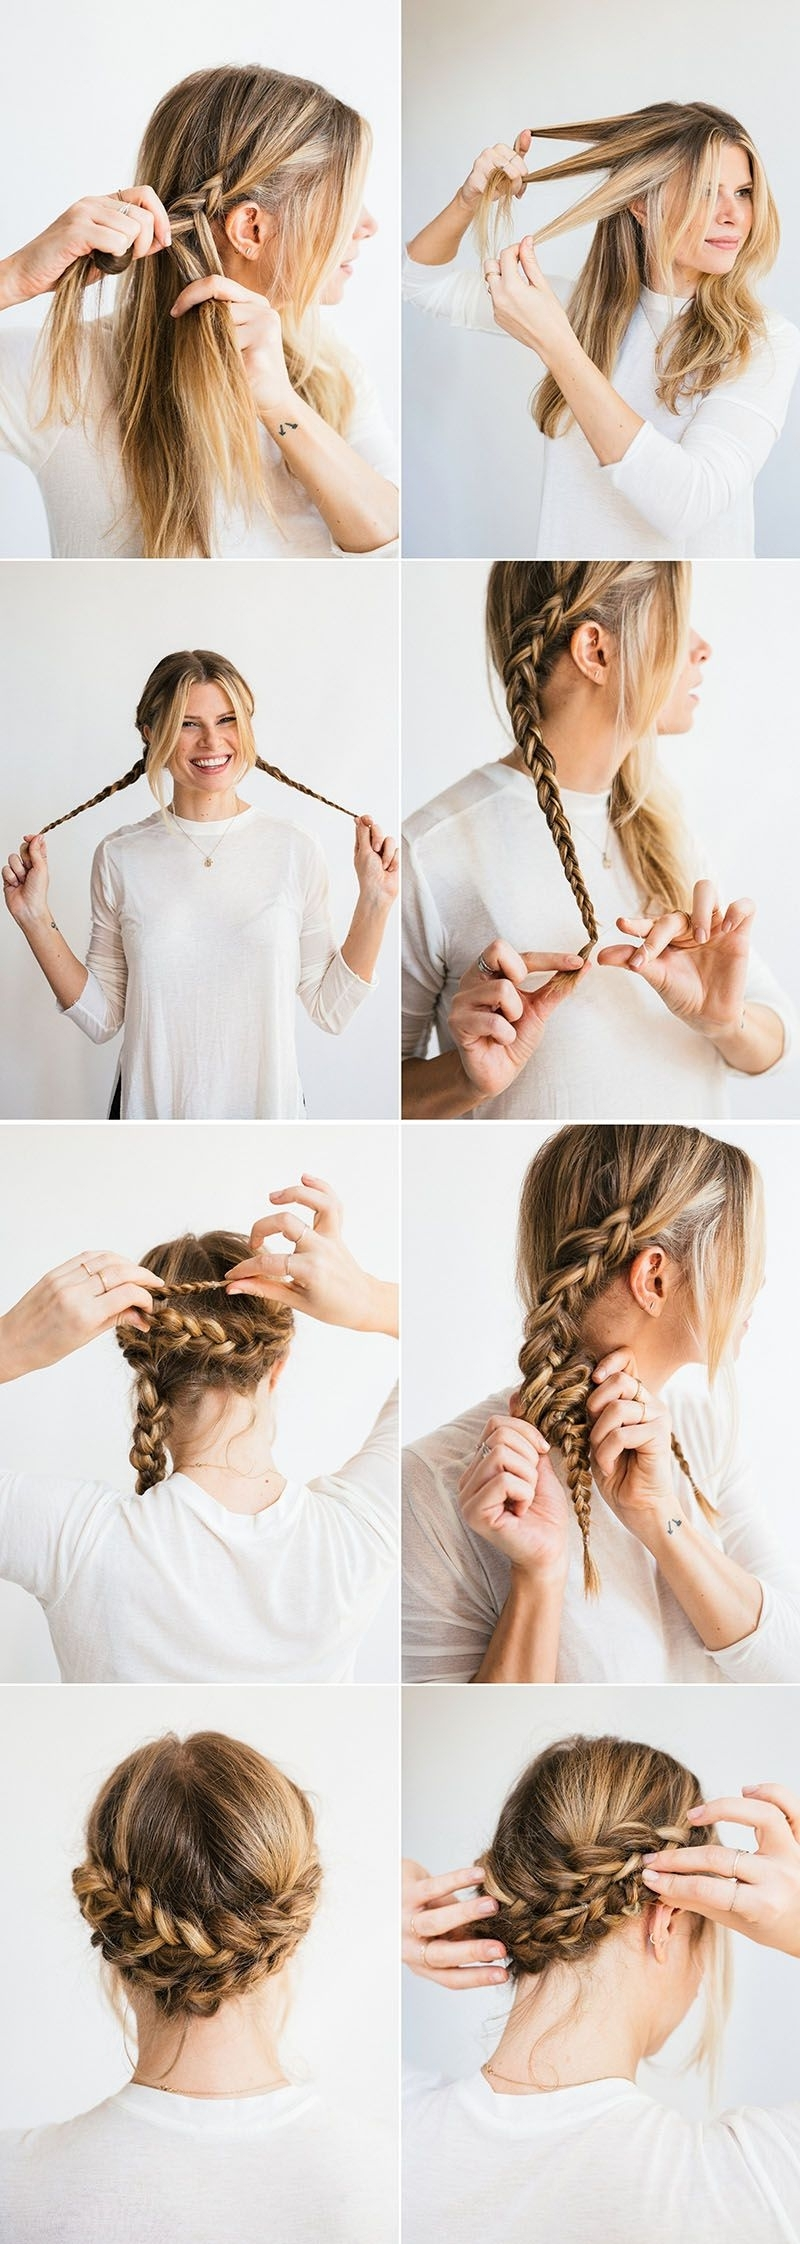 2018 Popular Easy Braided Updo Hairstyles For Long Hair